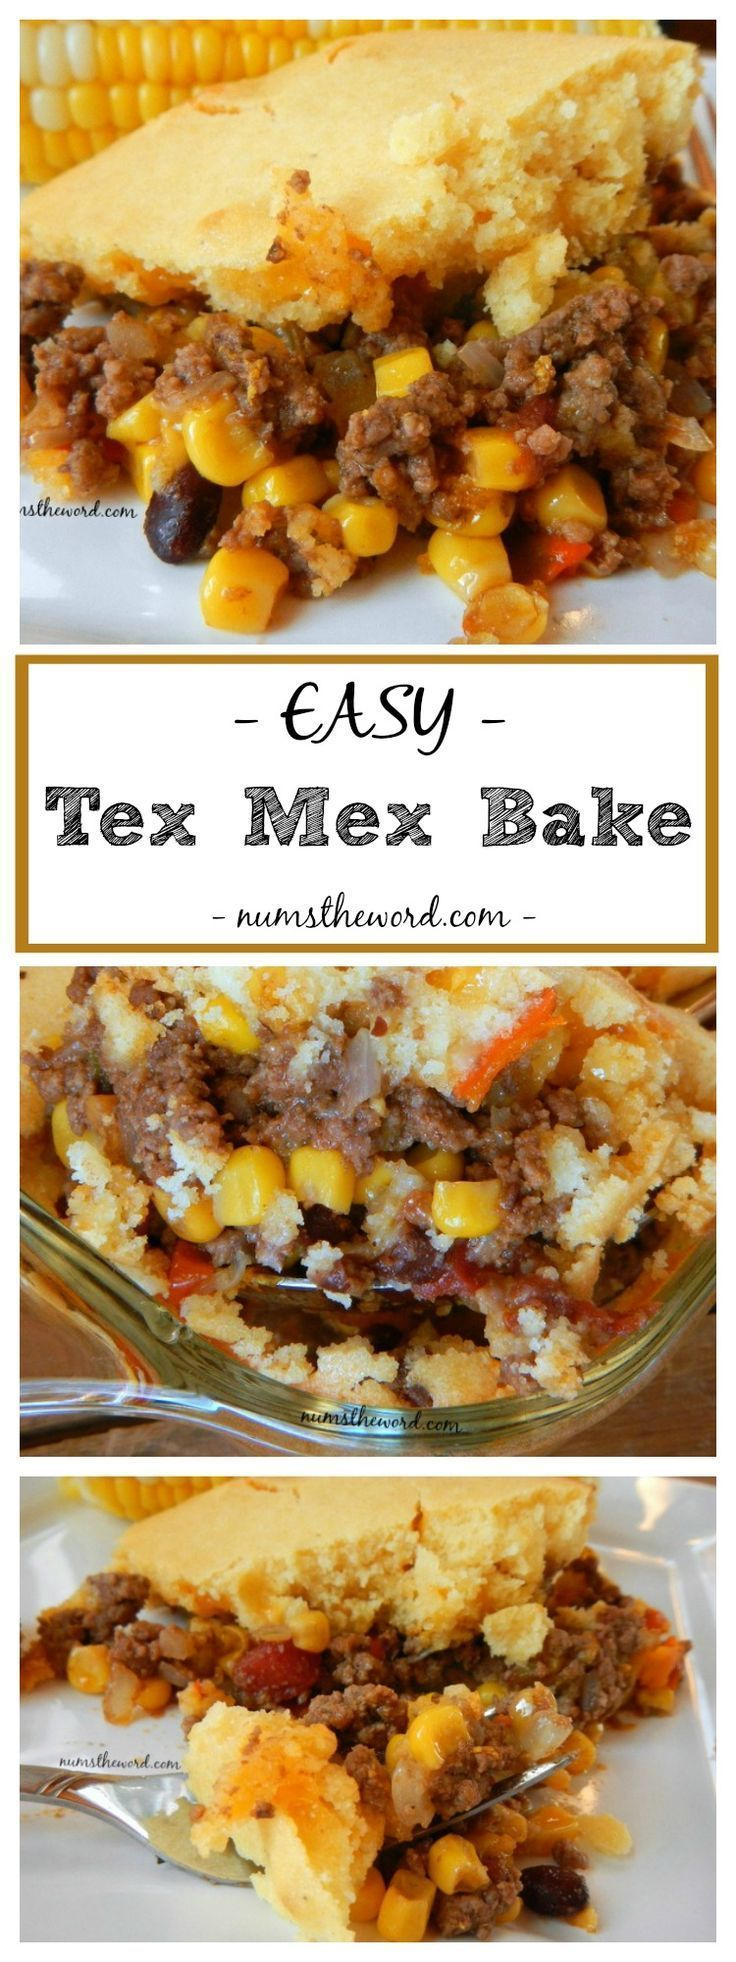 *VIDEO* This Easy Tex Mex Bake has turned into a favorite meal. Flavorful ground...